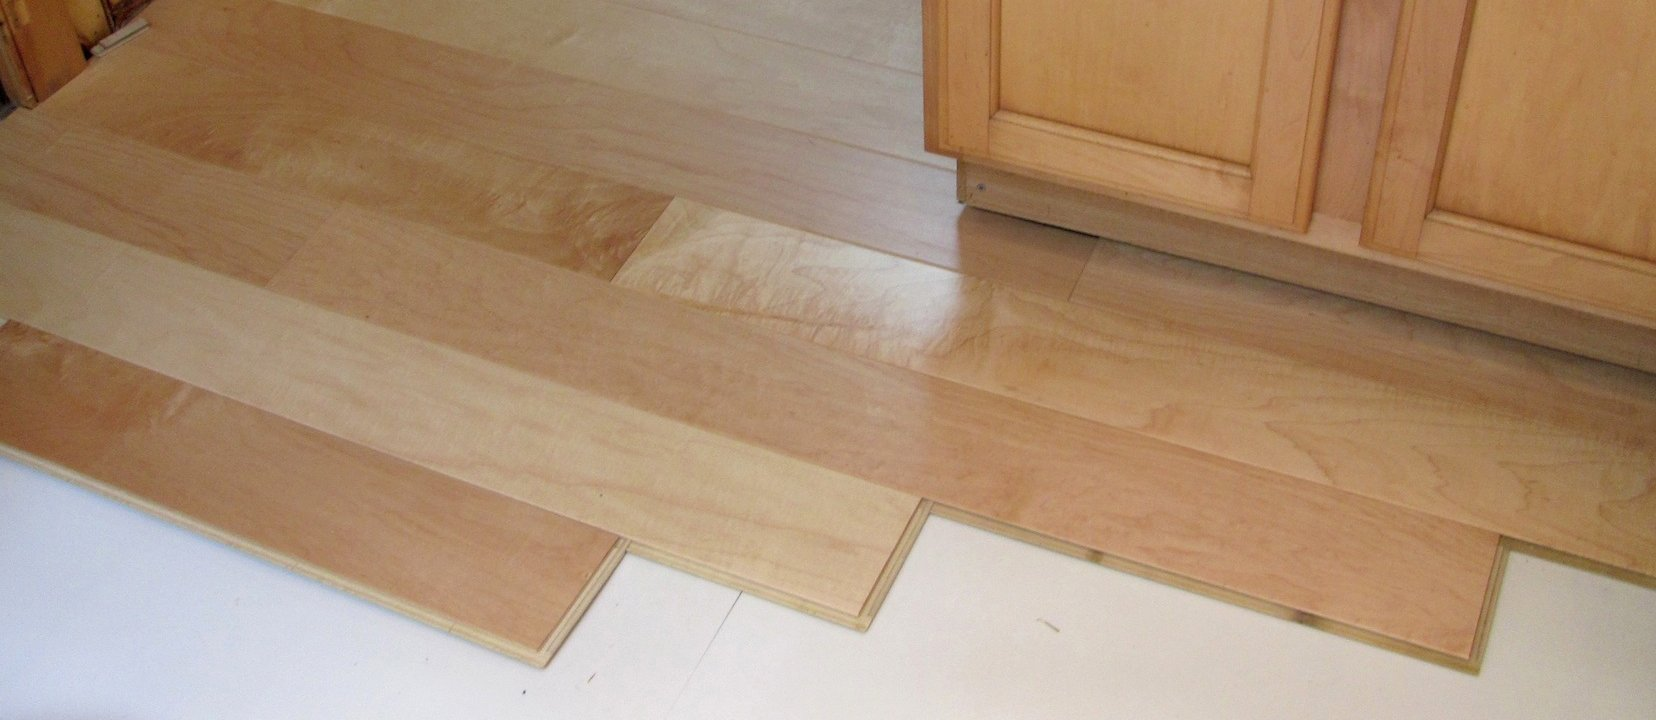 mm-blog1-laminate-floor_sm